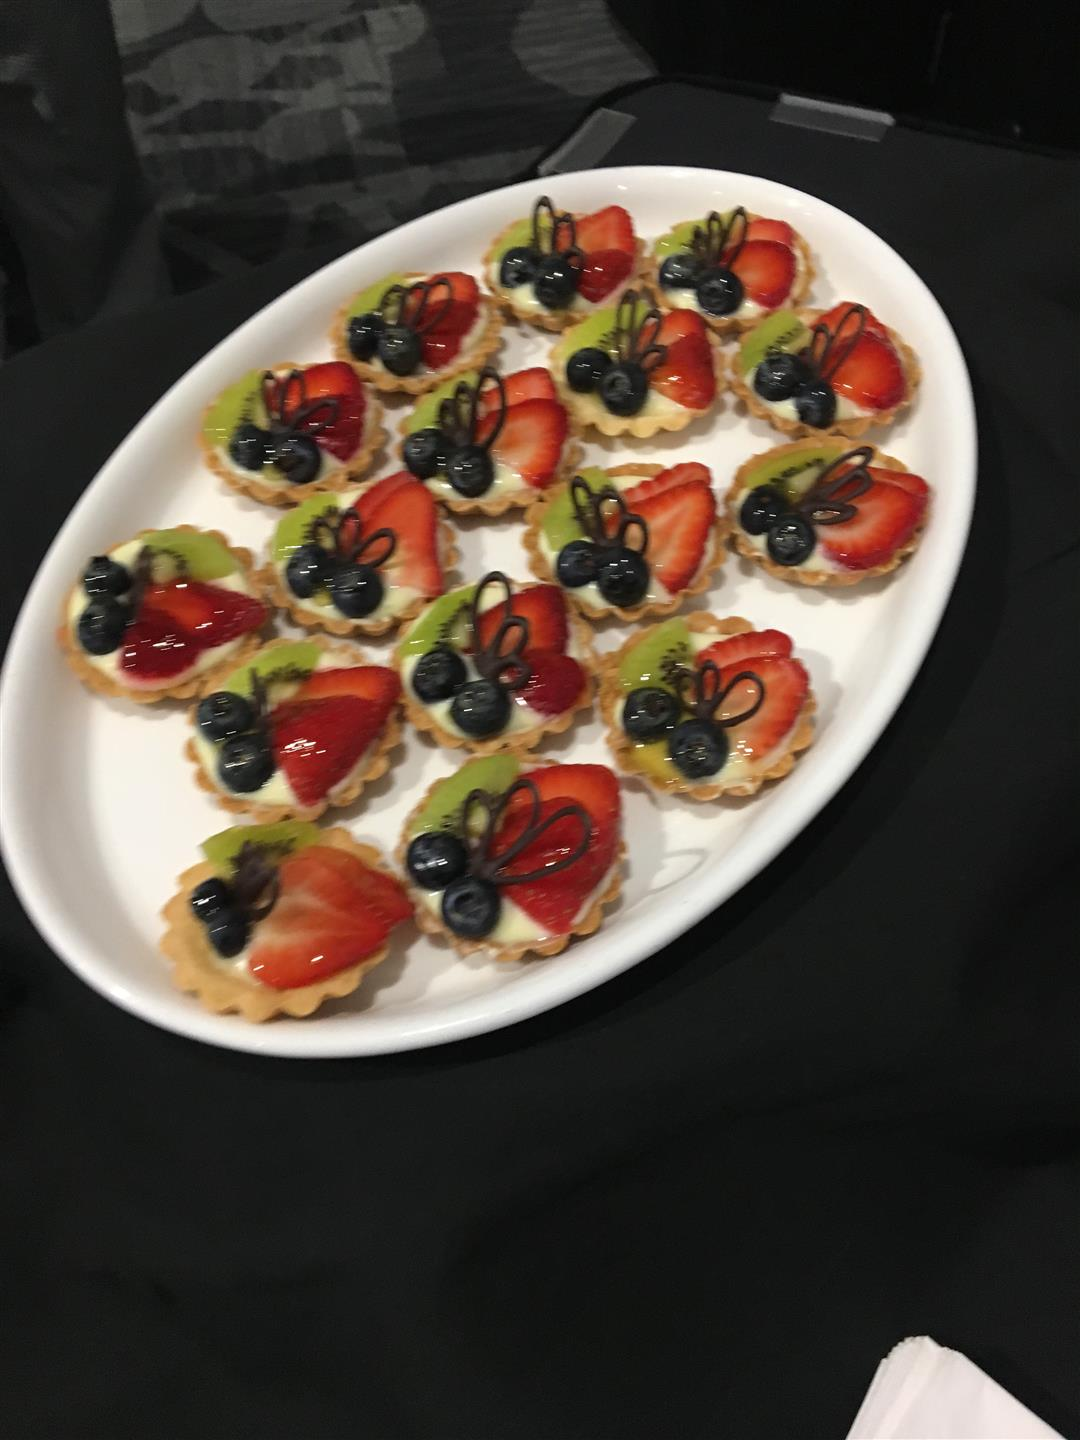 Fruit tart with strawberries, kiwi, blueberries and custard on a platter